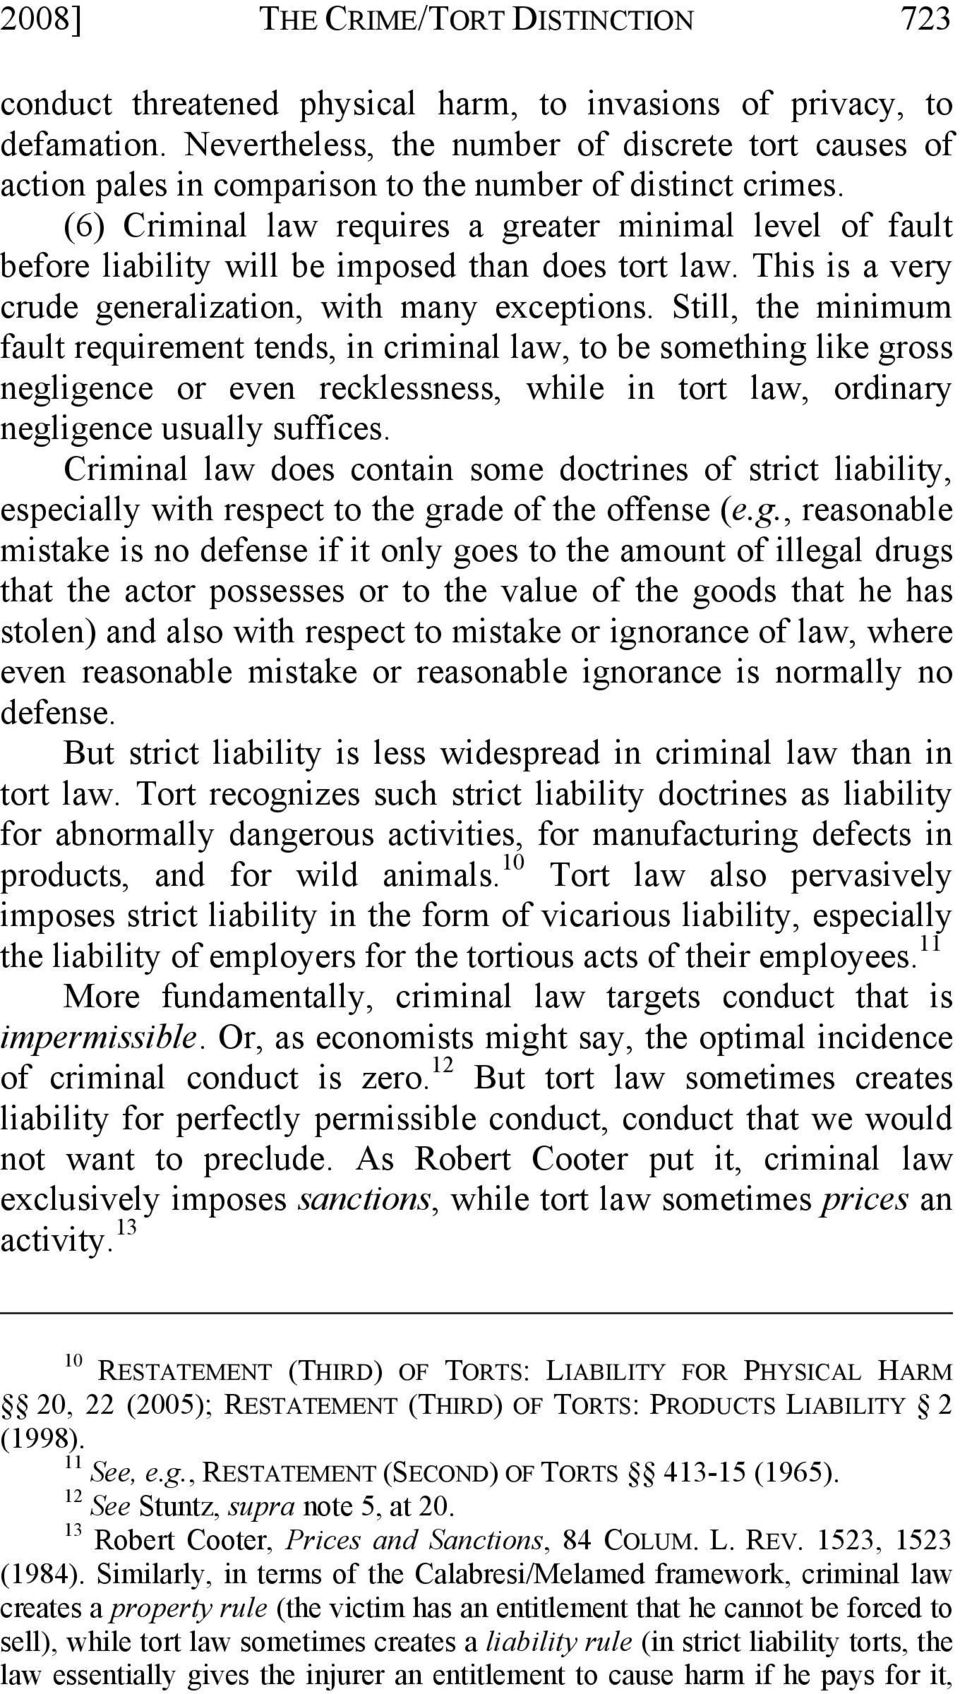 (6) Criminal law requires a greater minimal level of fault before liability will be imposed than does tort law. This is a very crude generalization, with many exceptions.